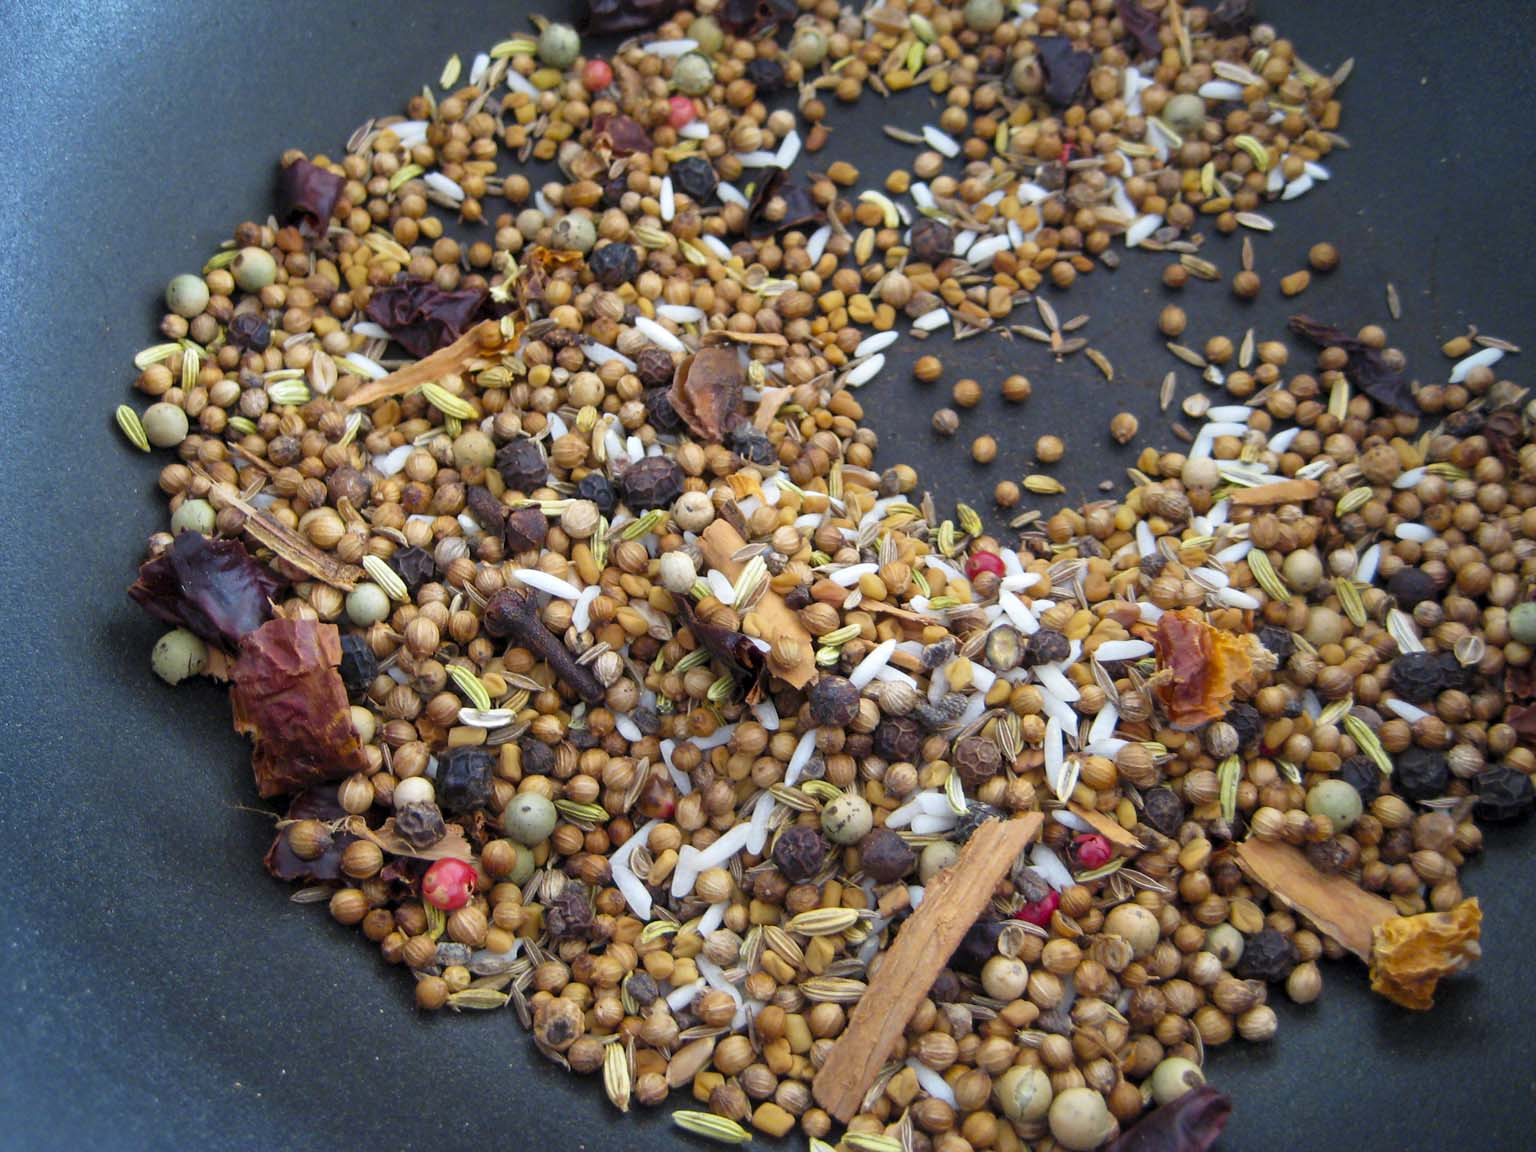 Flavor explosions blog archive malaysian curry powder forumfinder Gallery